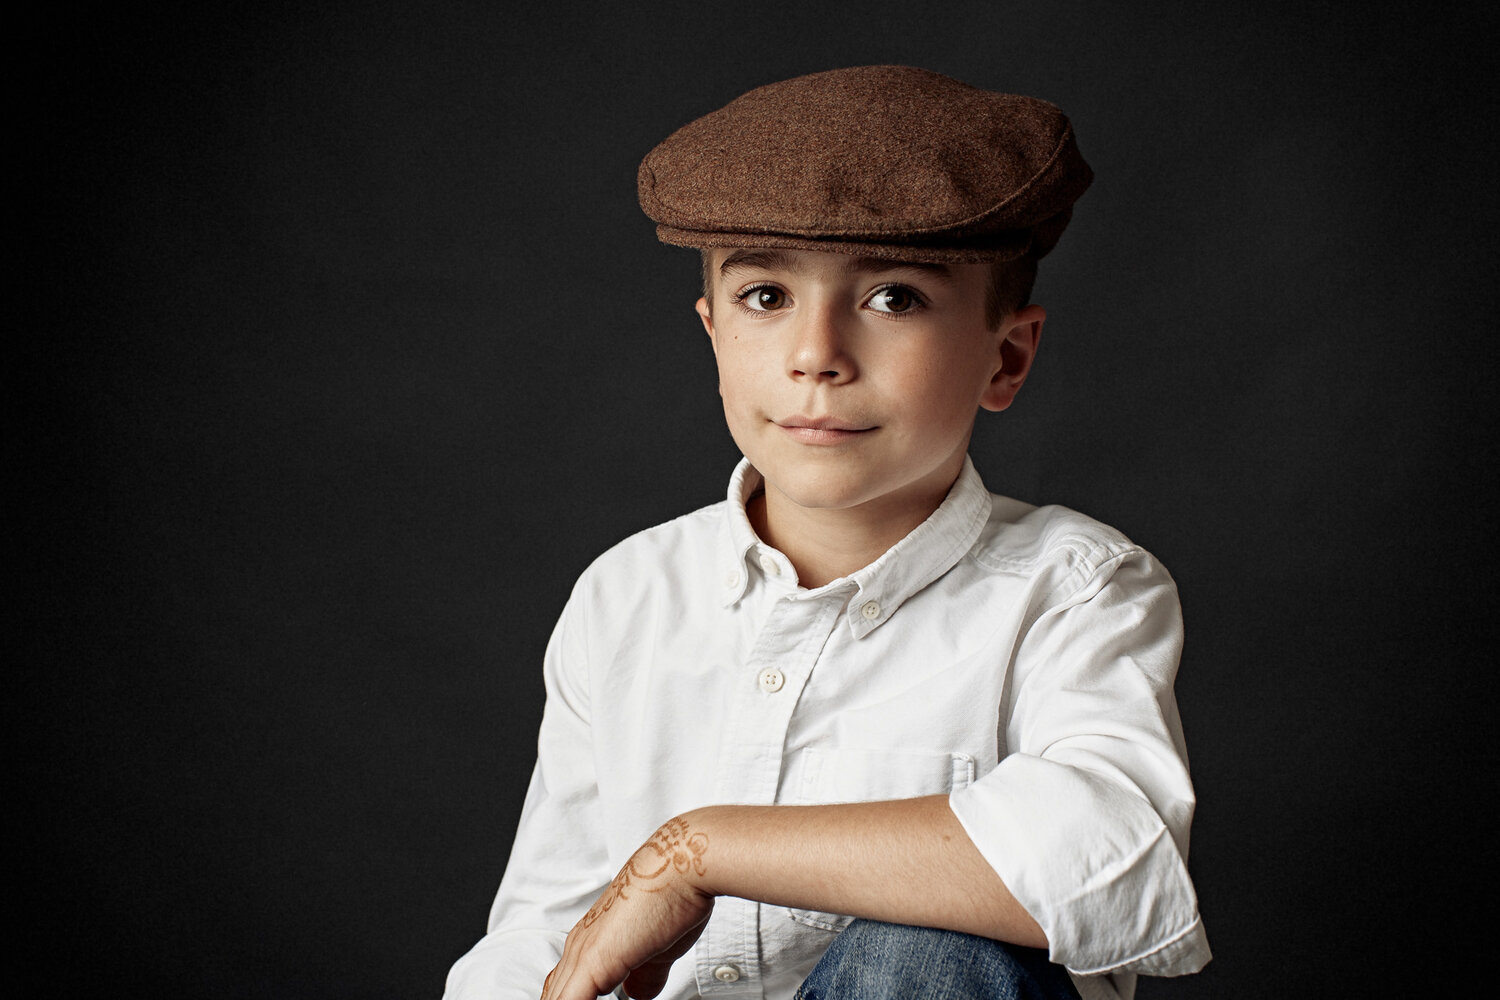 portrait of boy sitting with golf cap and white shirt new braunfels photography studio